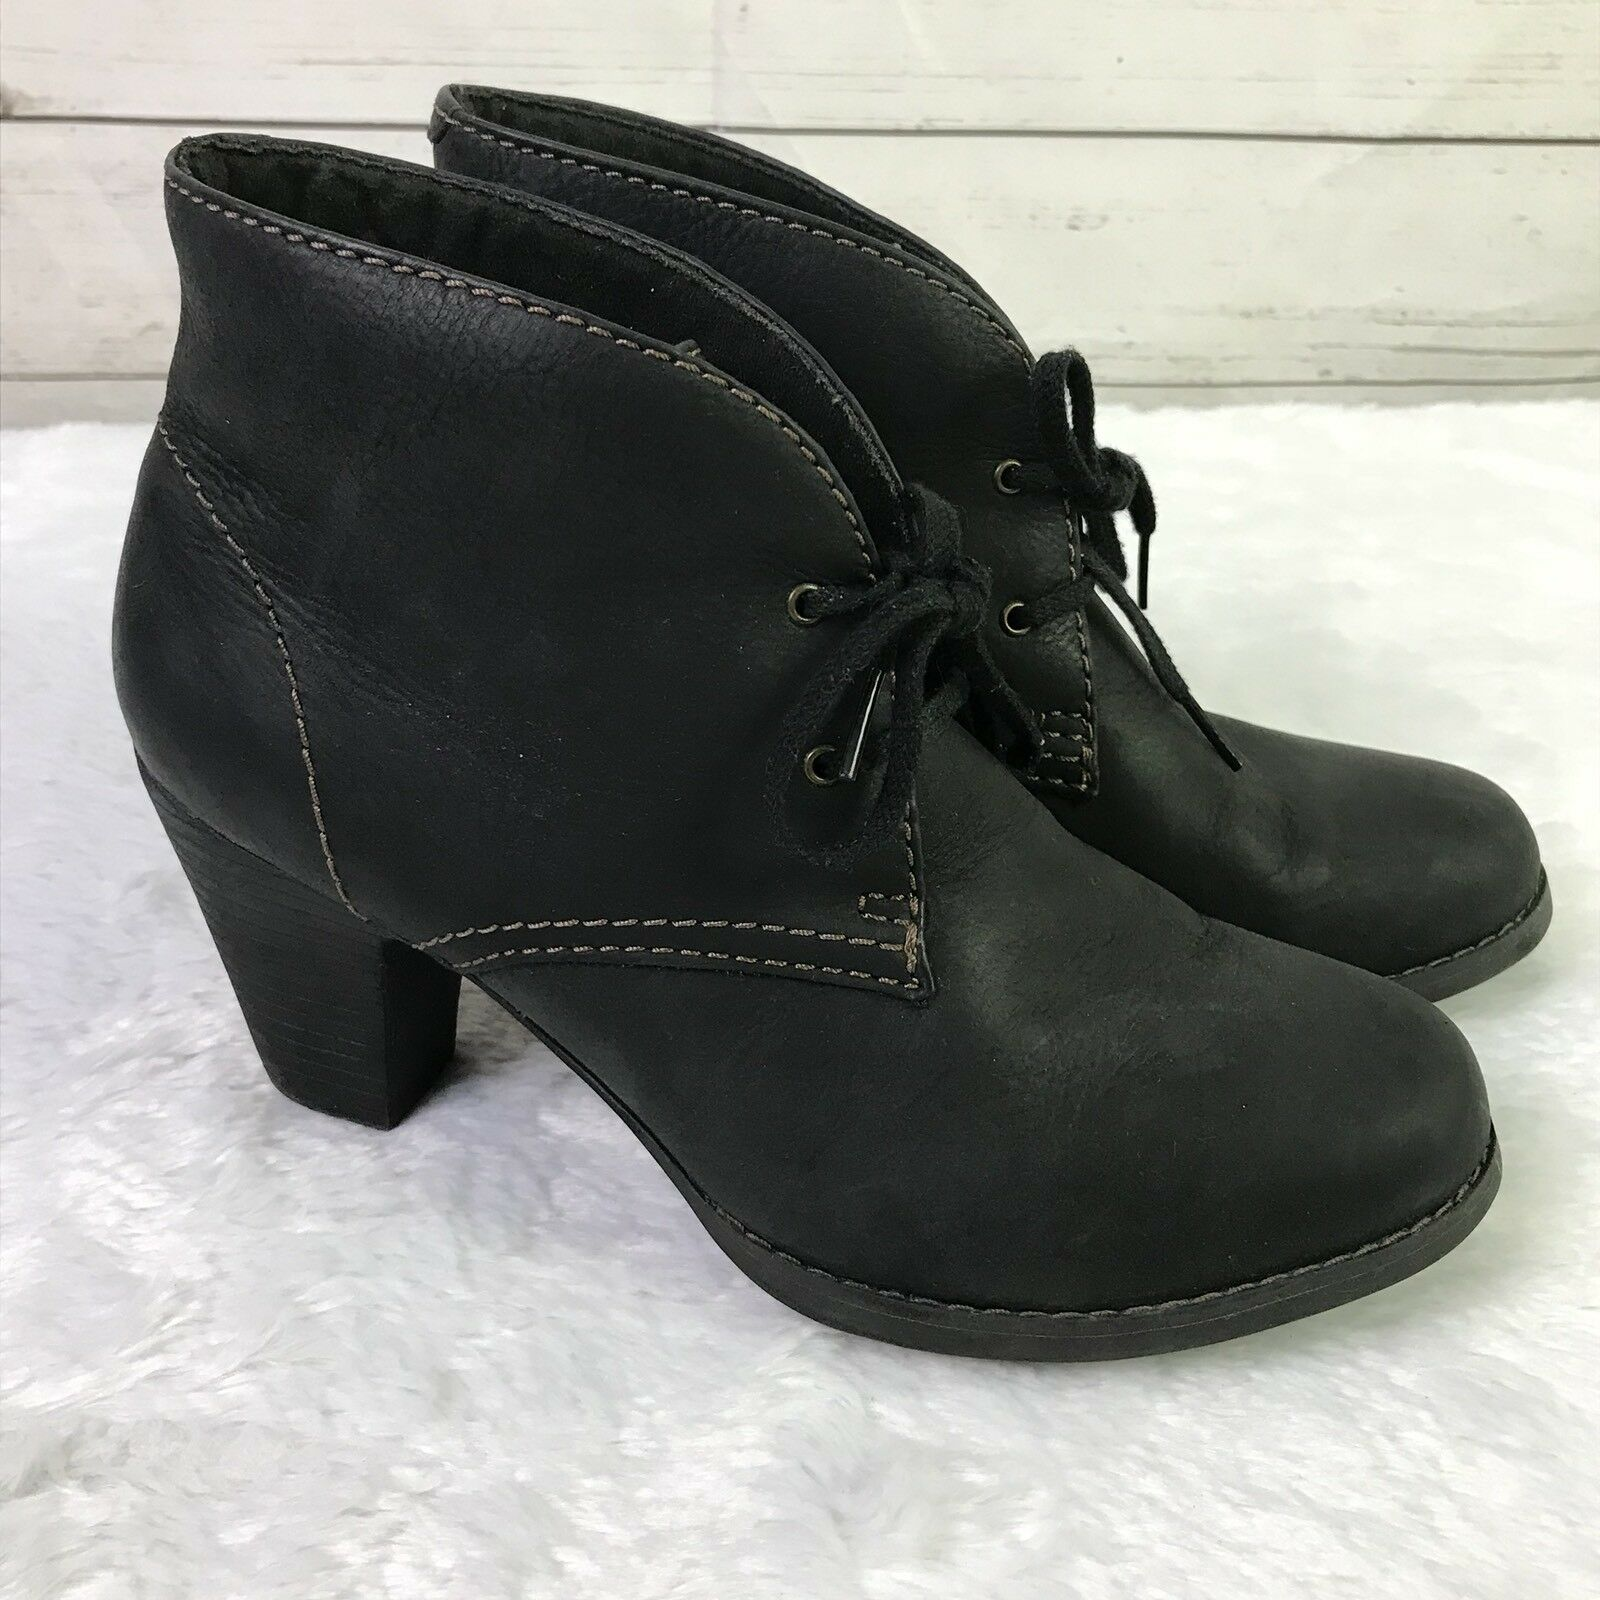 Clarks Women's booties leather 10M lace up heel black short boots